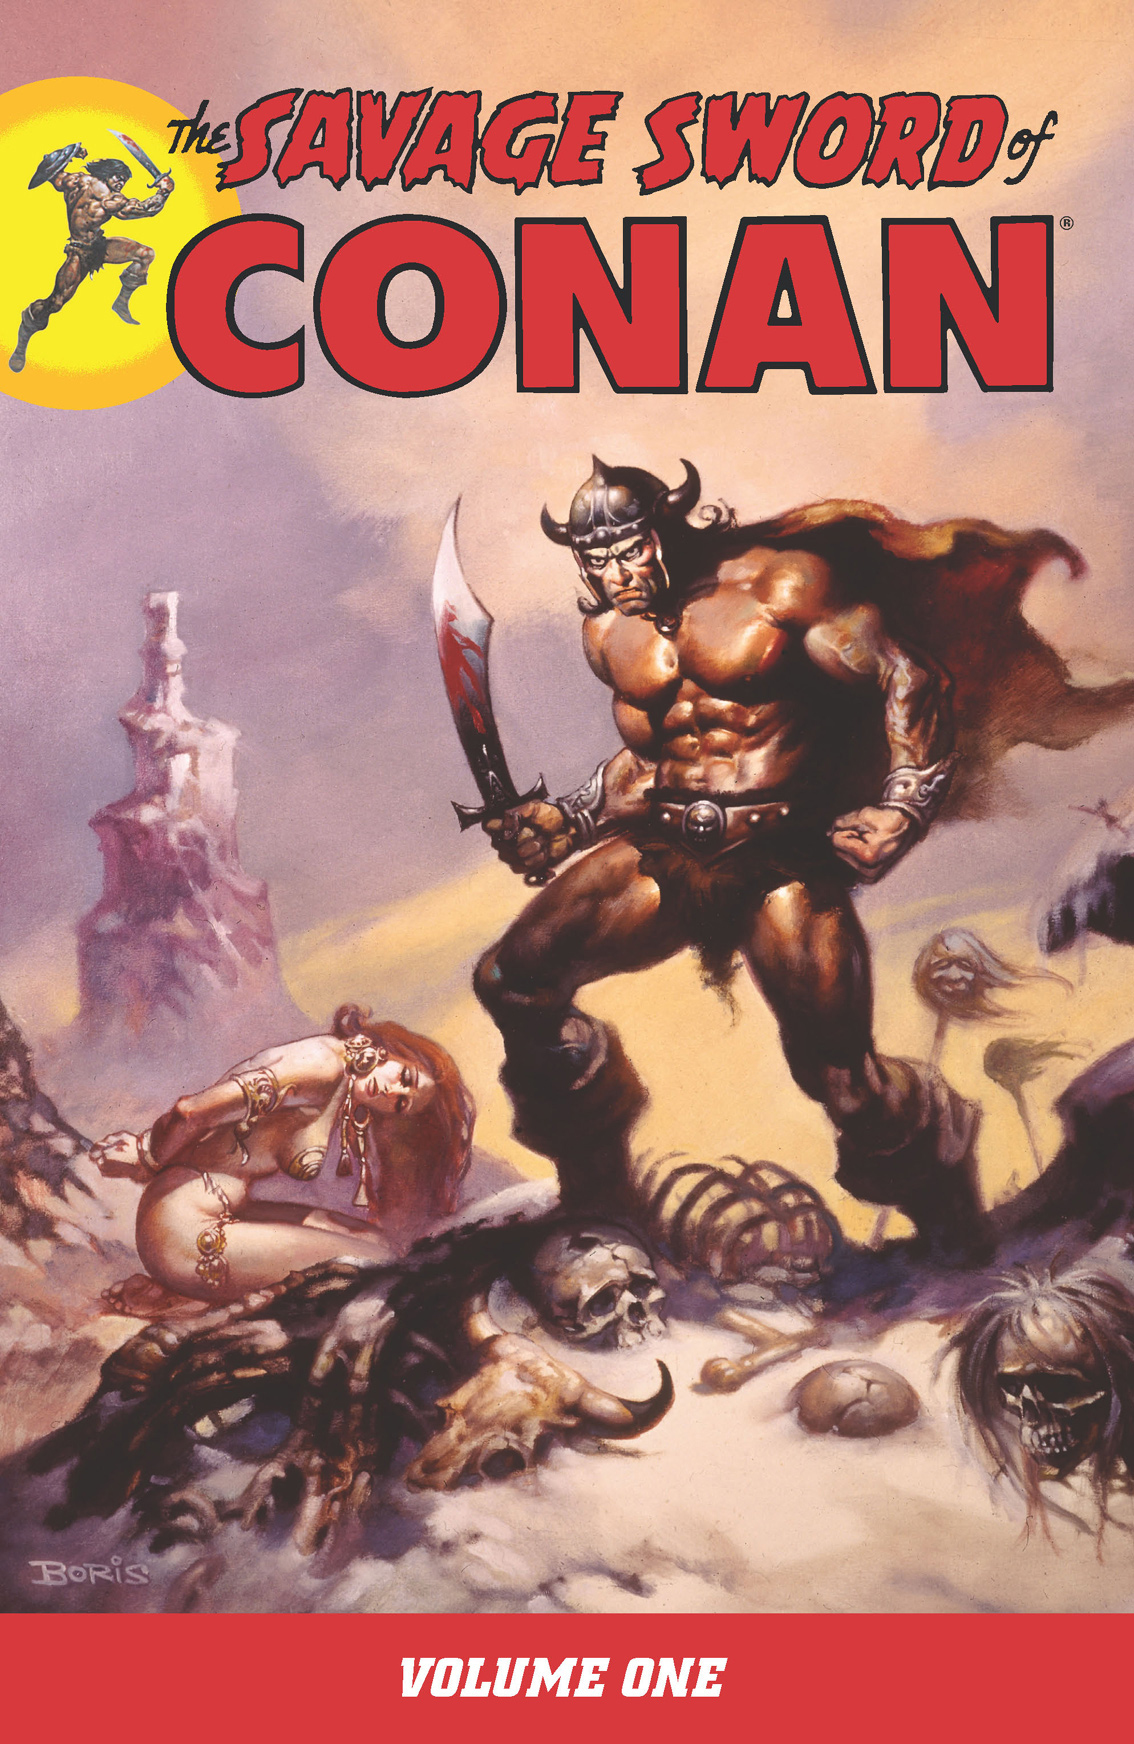 Savage Sword of Conan Vol. 1 By: Roy Thomas, Barry Windsor-Smith (Artist), John Buscema (Artist), Alfredo Alcala (Artist), Pablo Marcos (Artist)